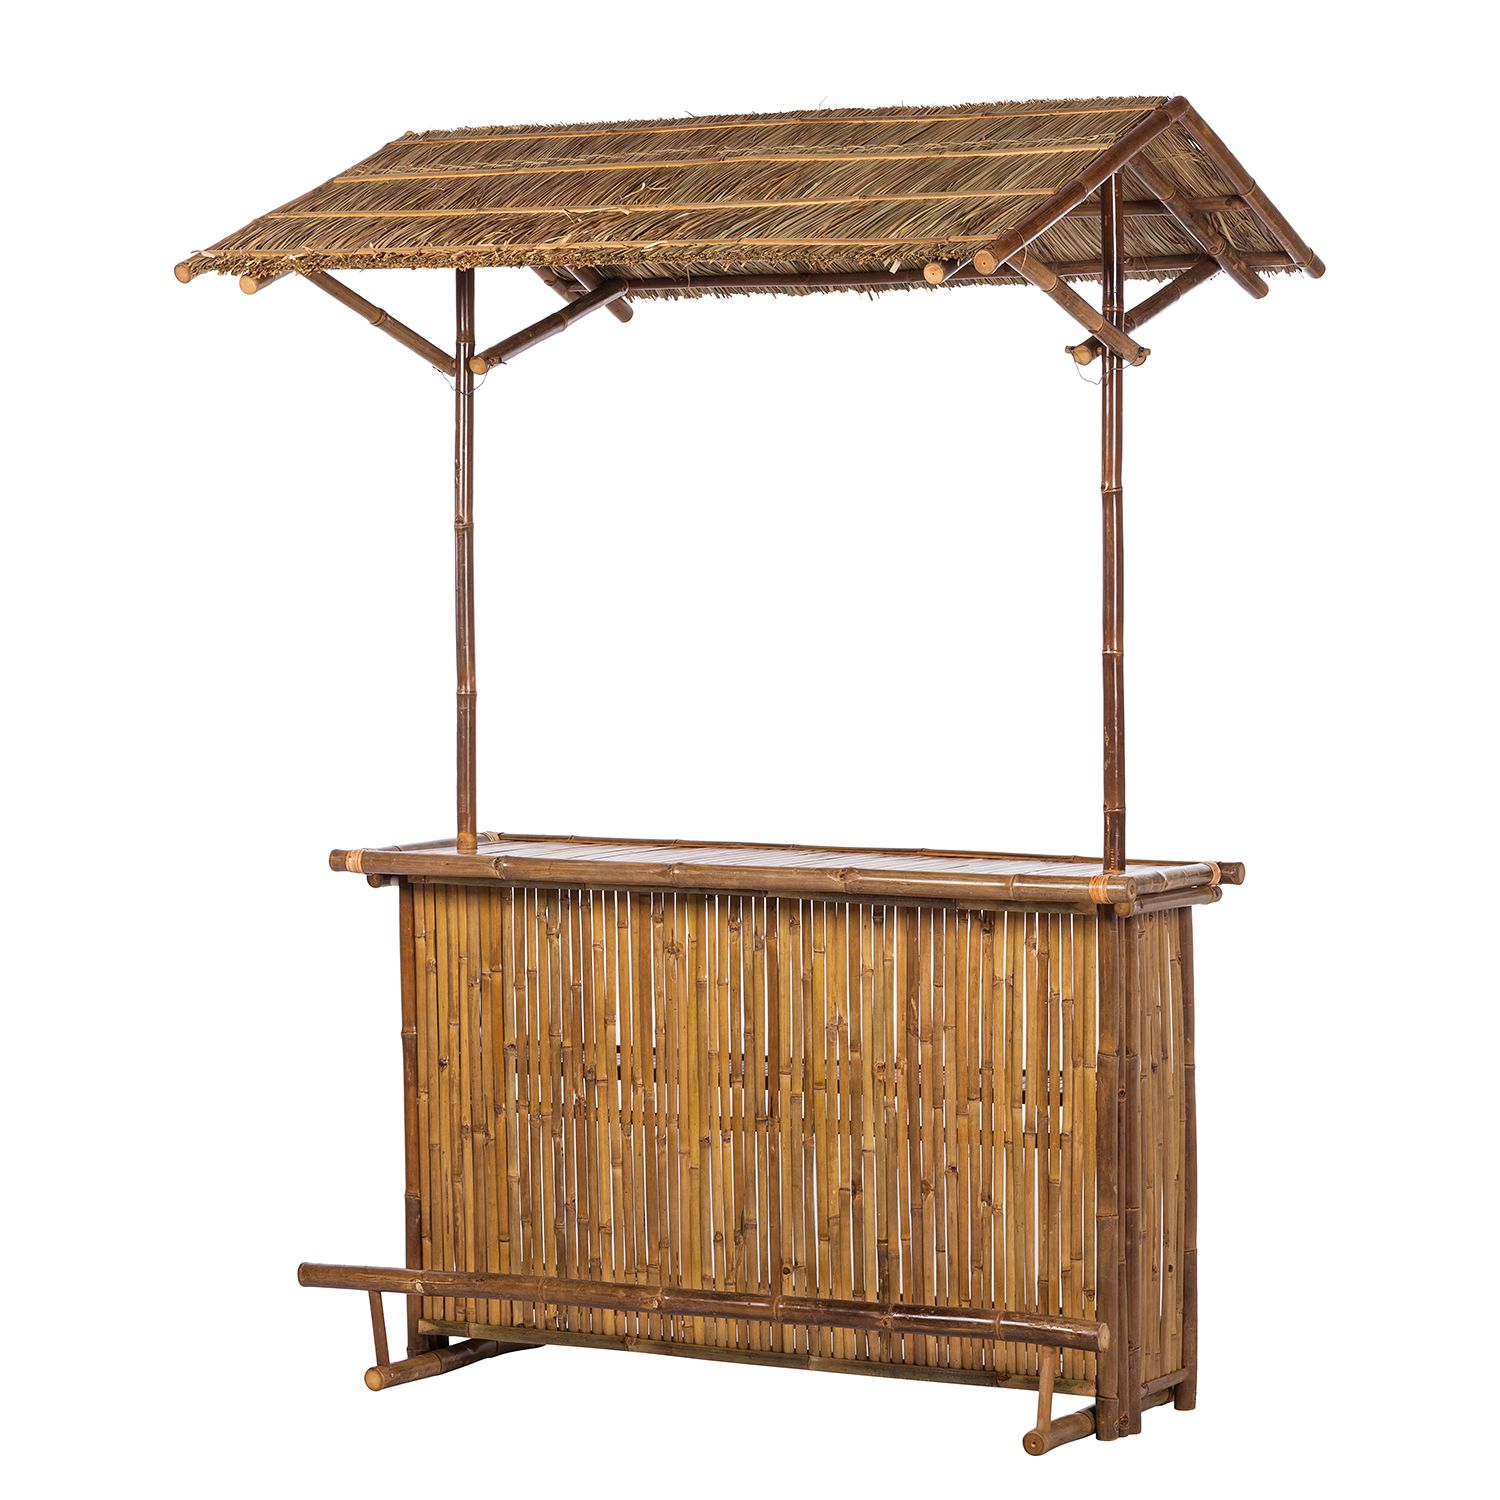 gartenbar bamboo bambus braun silva outdoor online. Black Bedroom Furniture Sets. Home Design Ideas